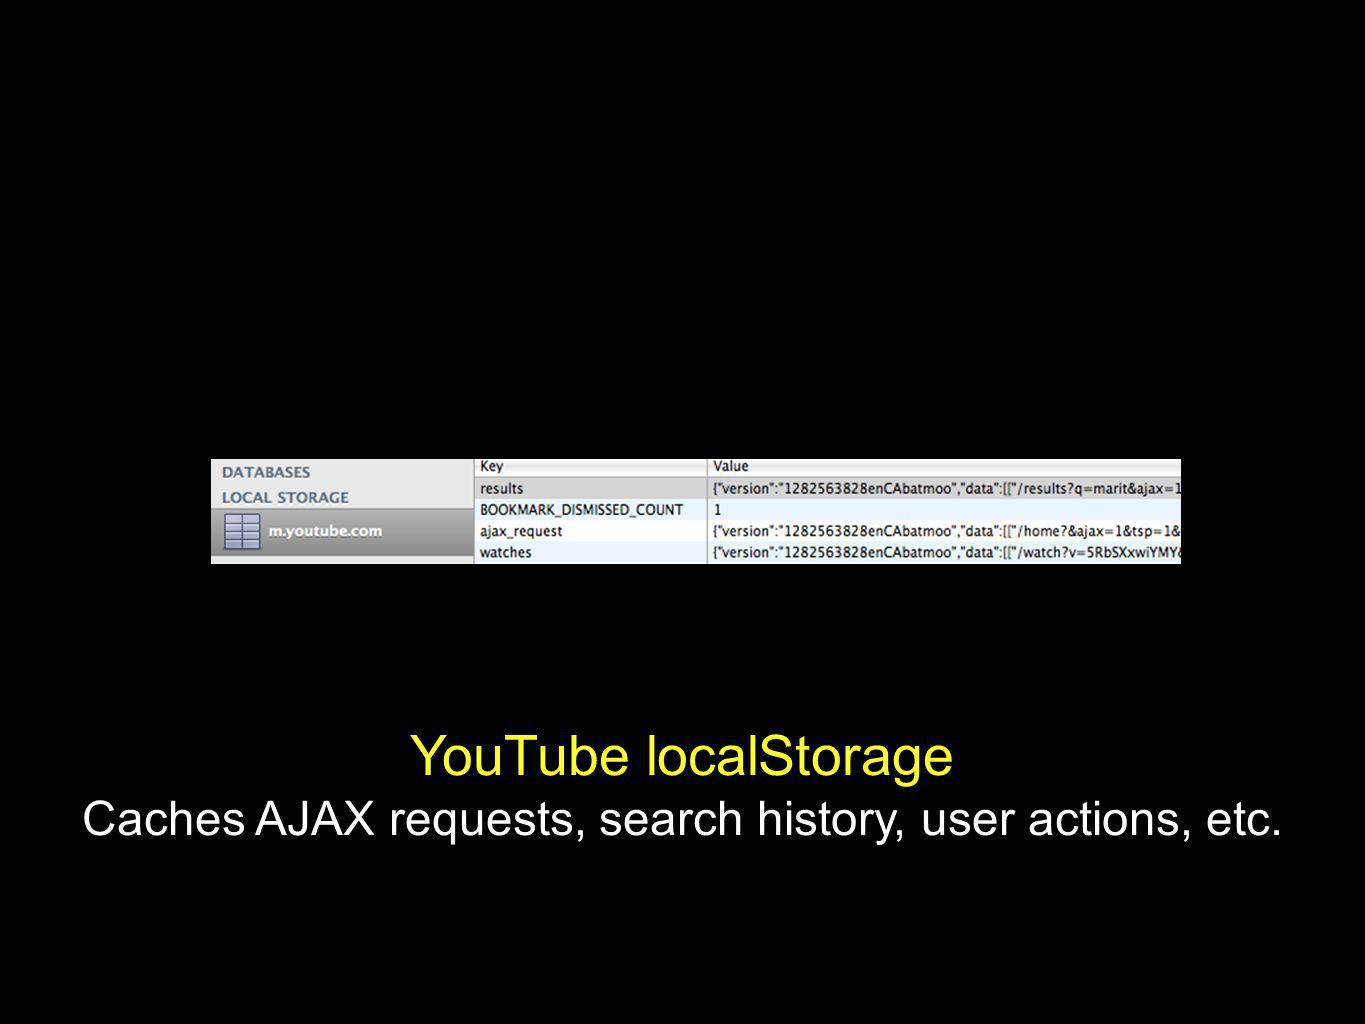 YouTube localStorage Caches AJAX requests, search history, user actions, etc.